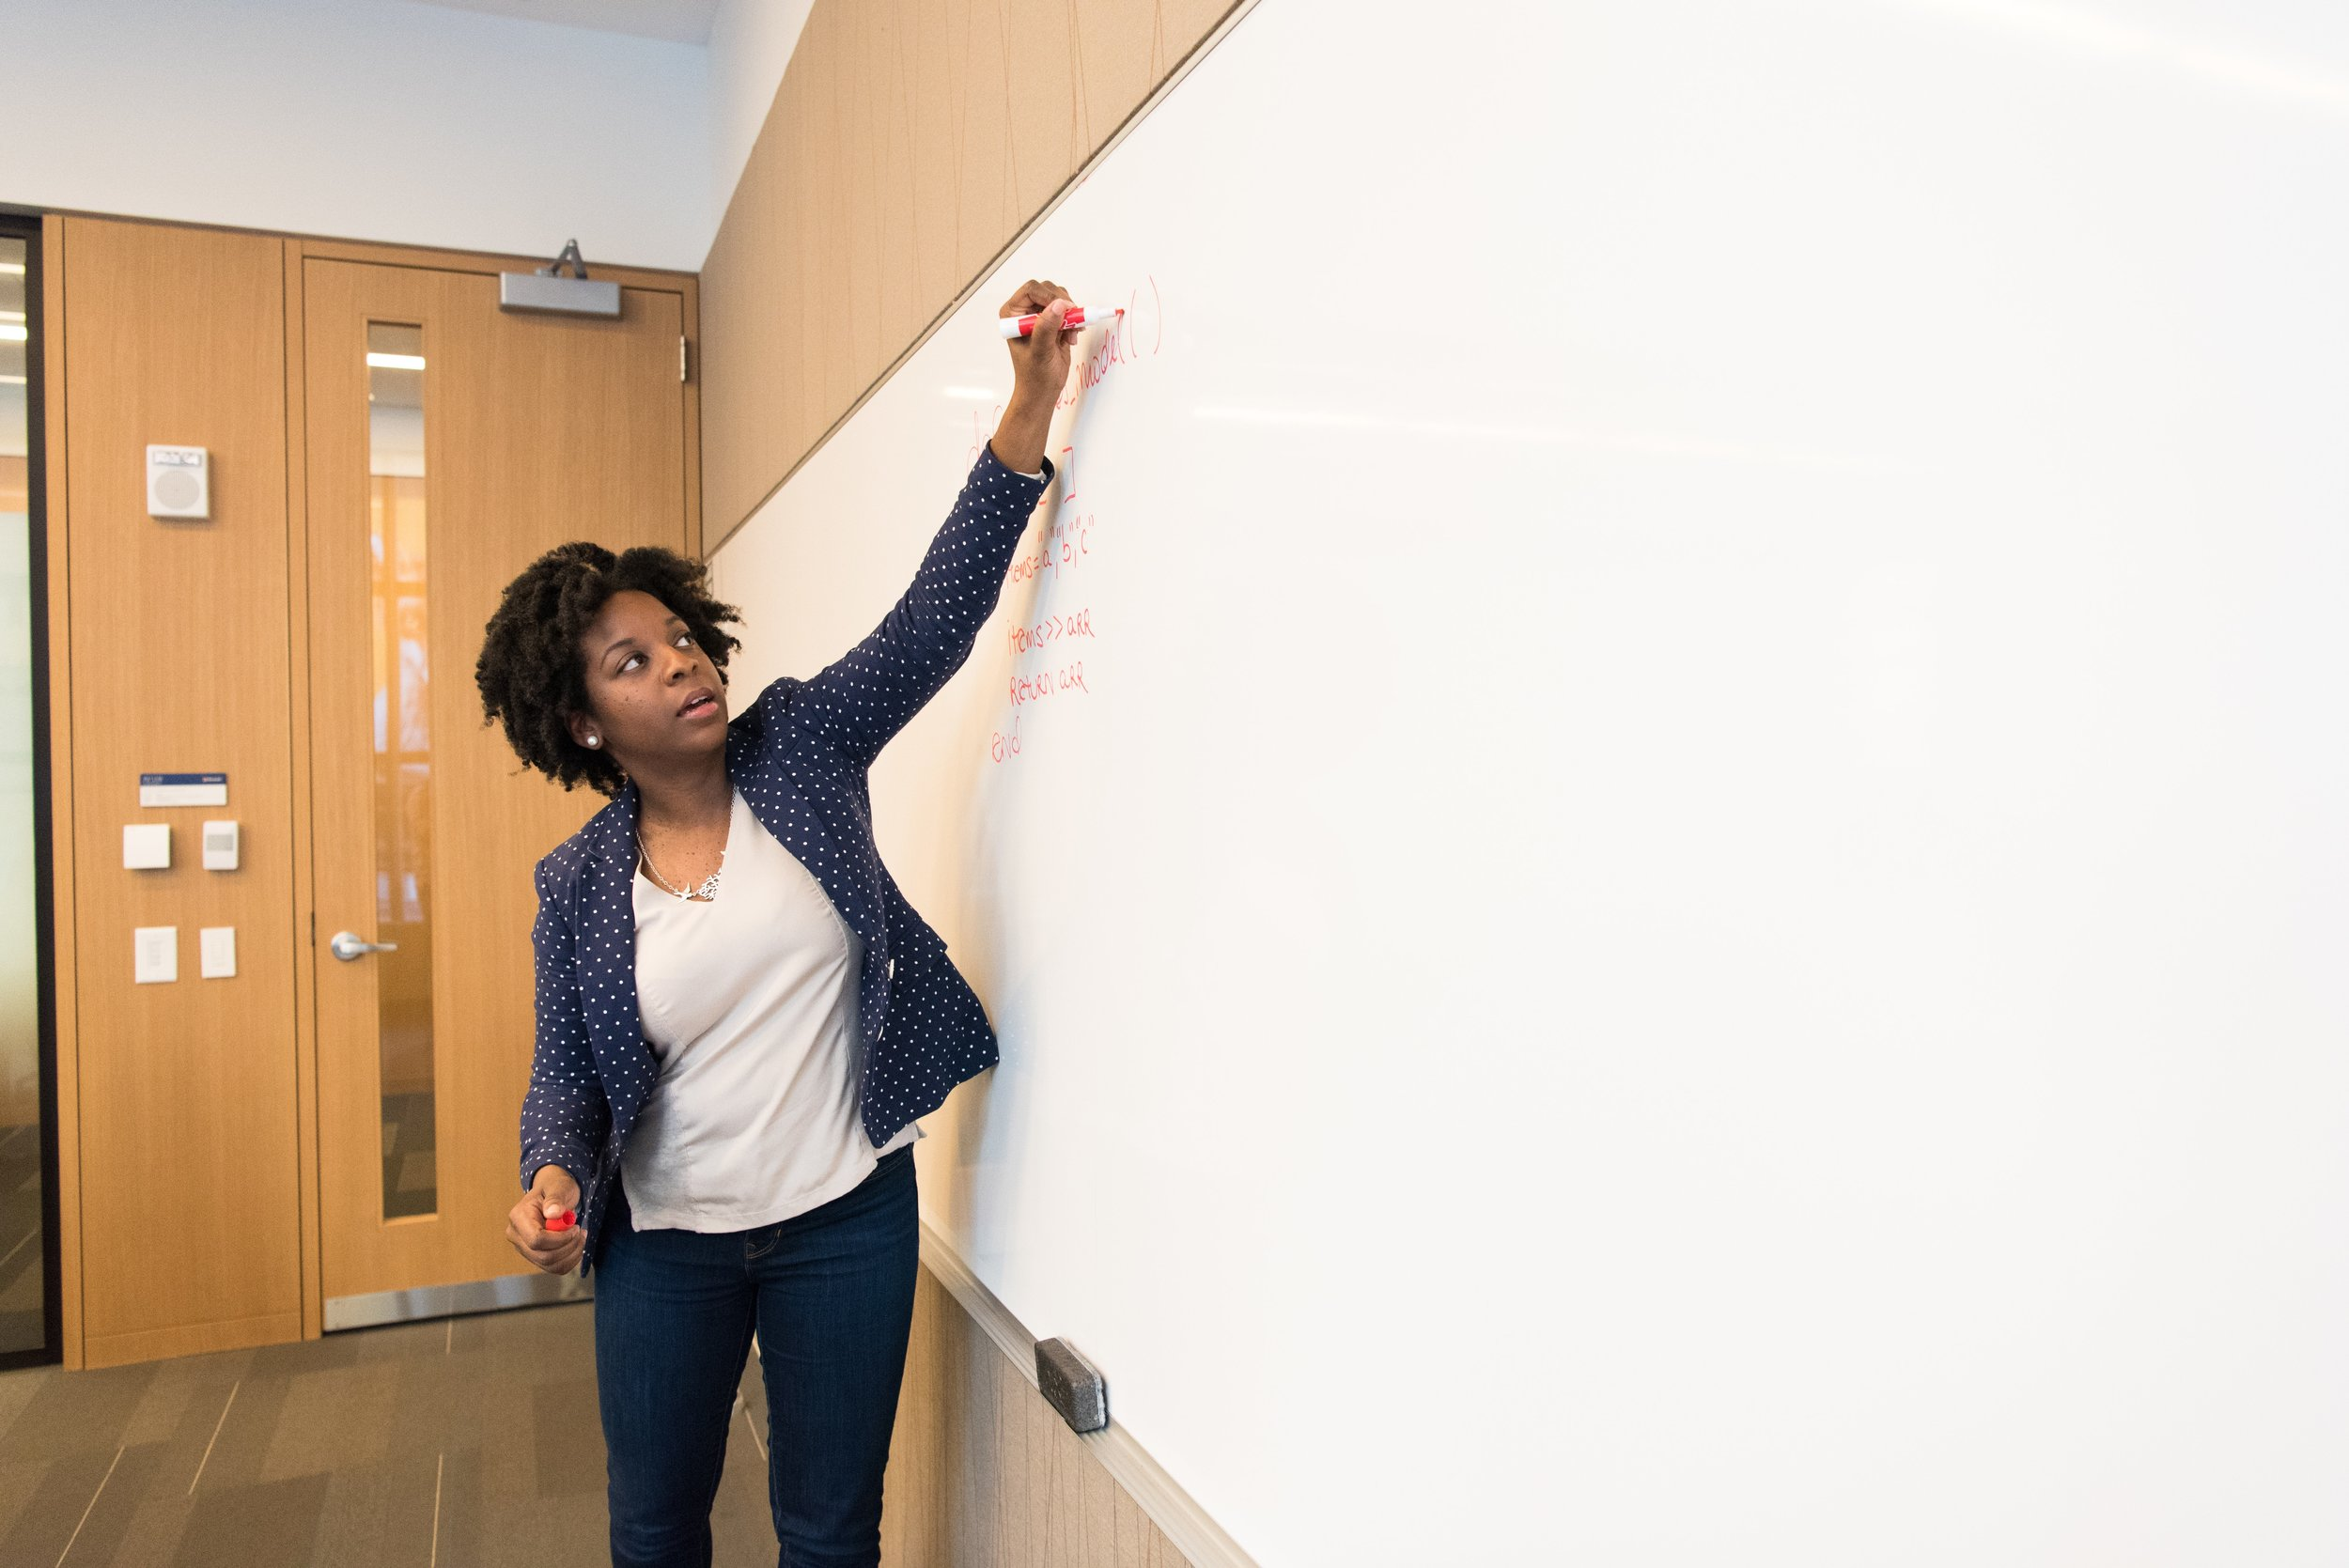 Are Teachers Really Underpaid? - Stagnant and low wages have been a major concern for teachers for years.